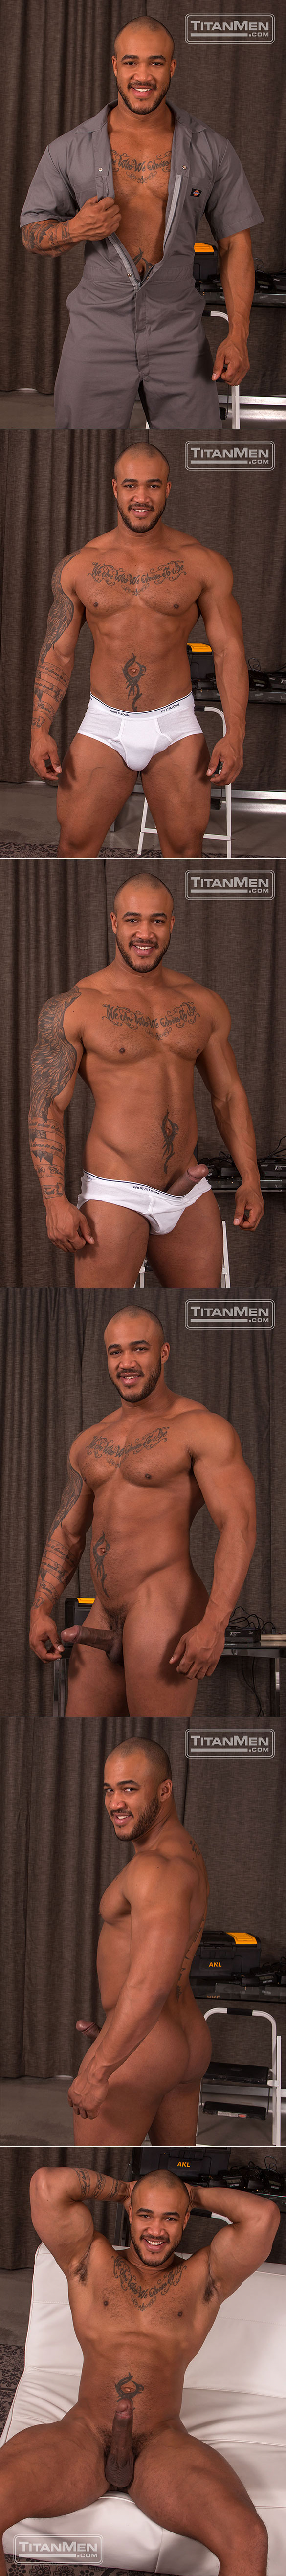 "TitanMen: Jason Vario and Matthew Bosch spit roast Luke Adams in ""West Texas Park & Ride"""